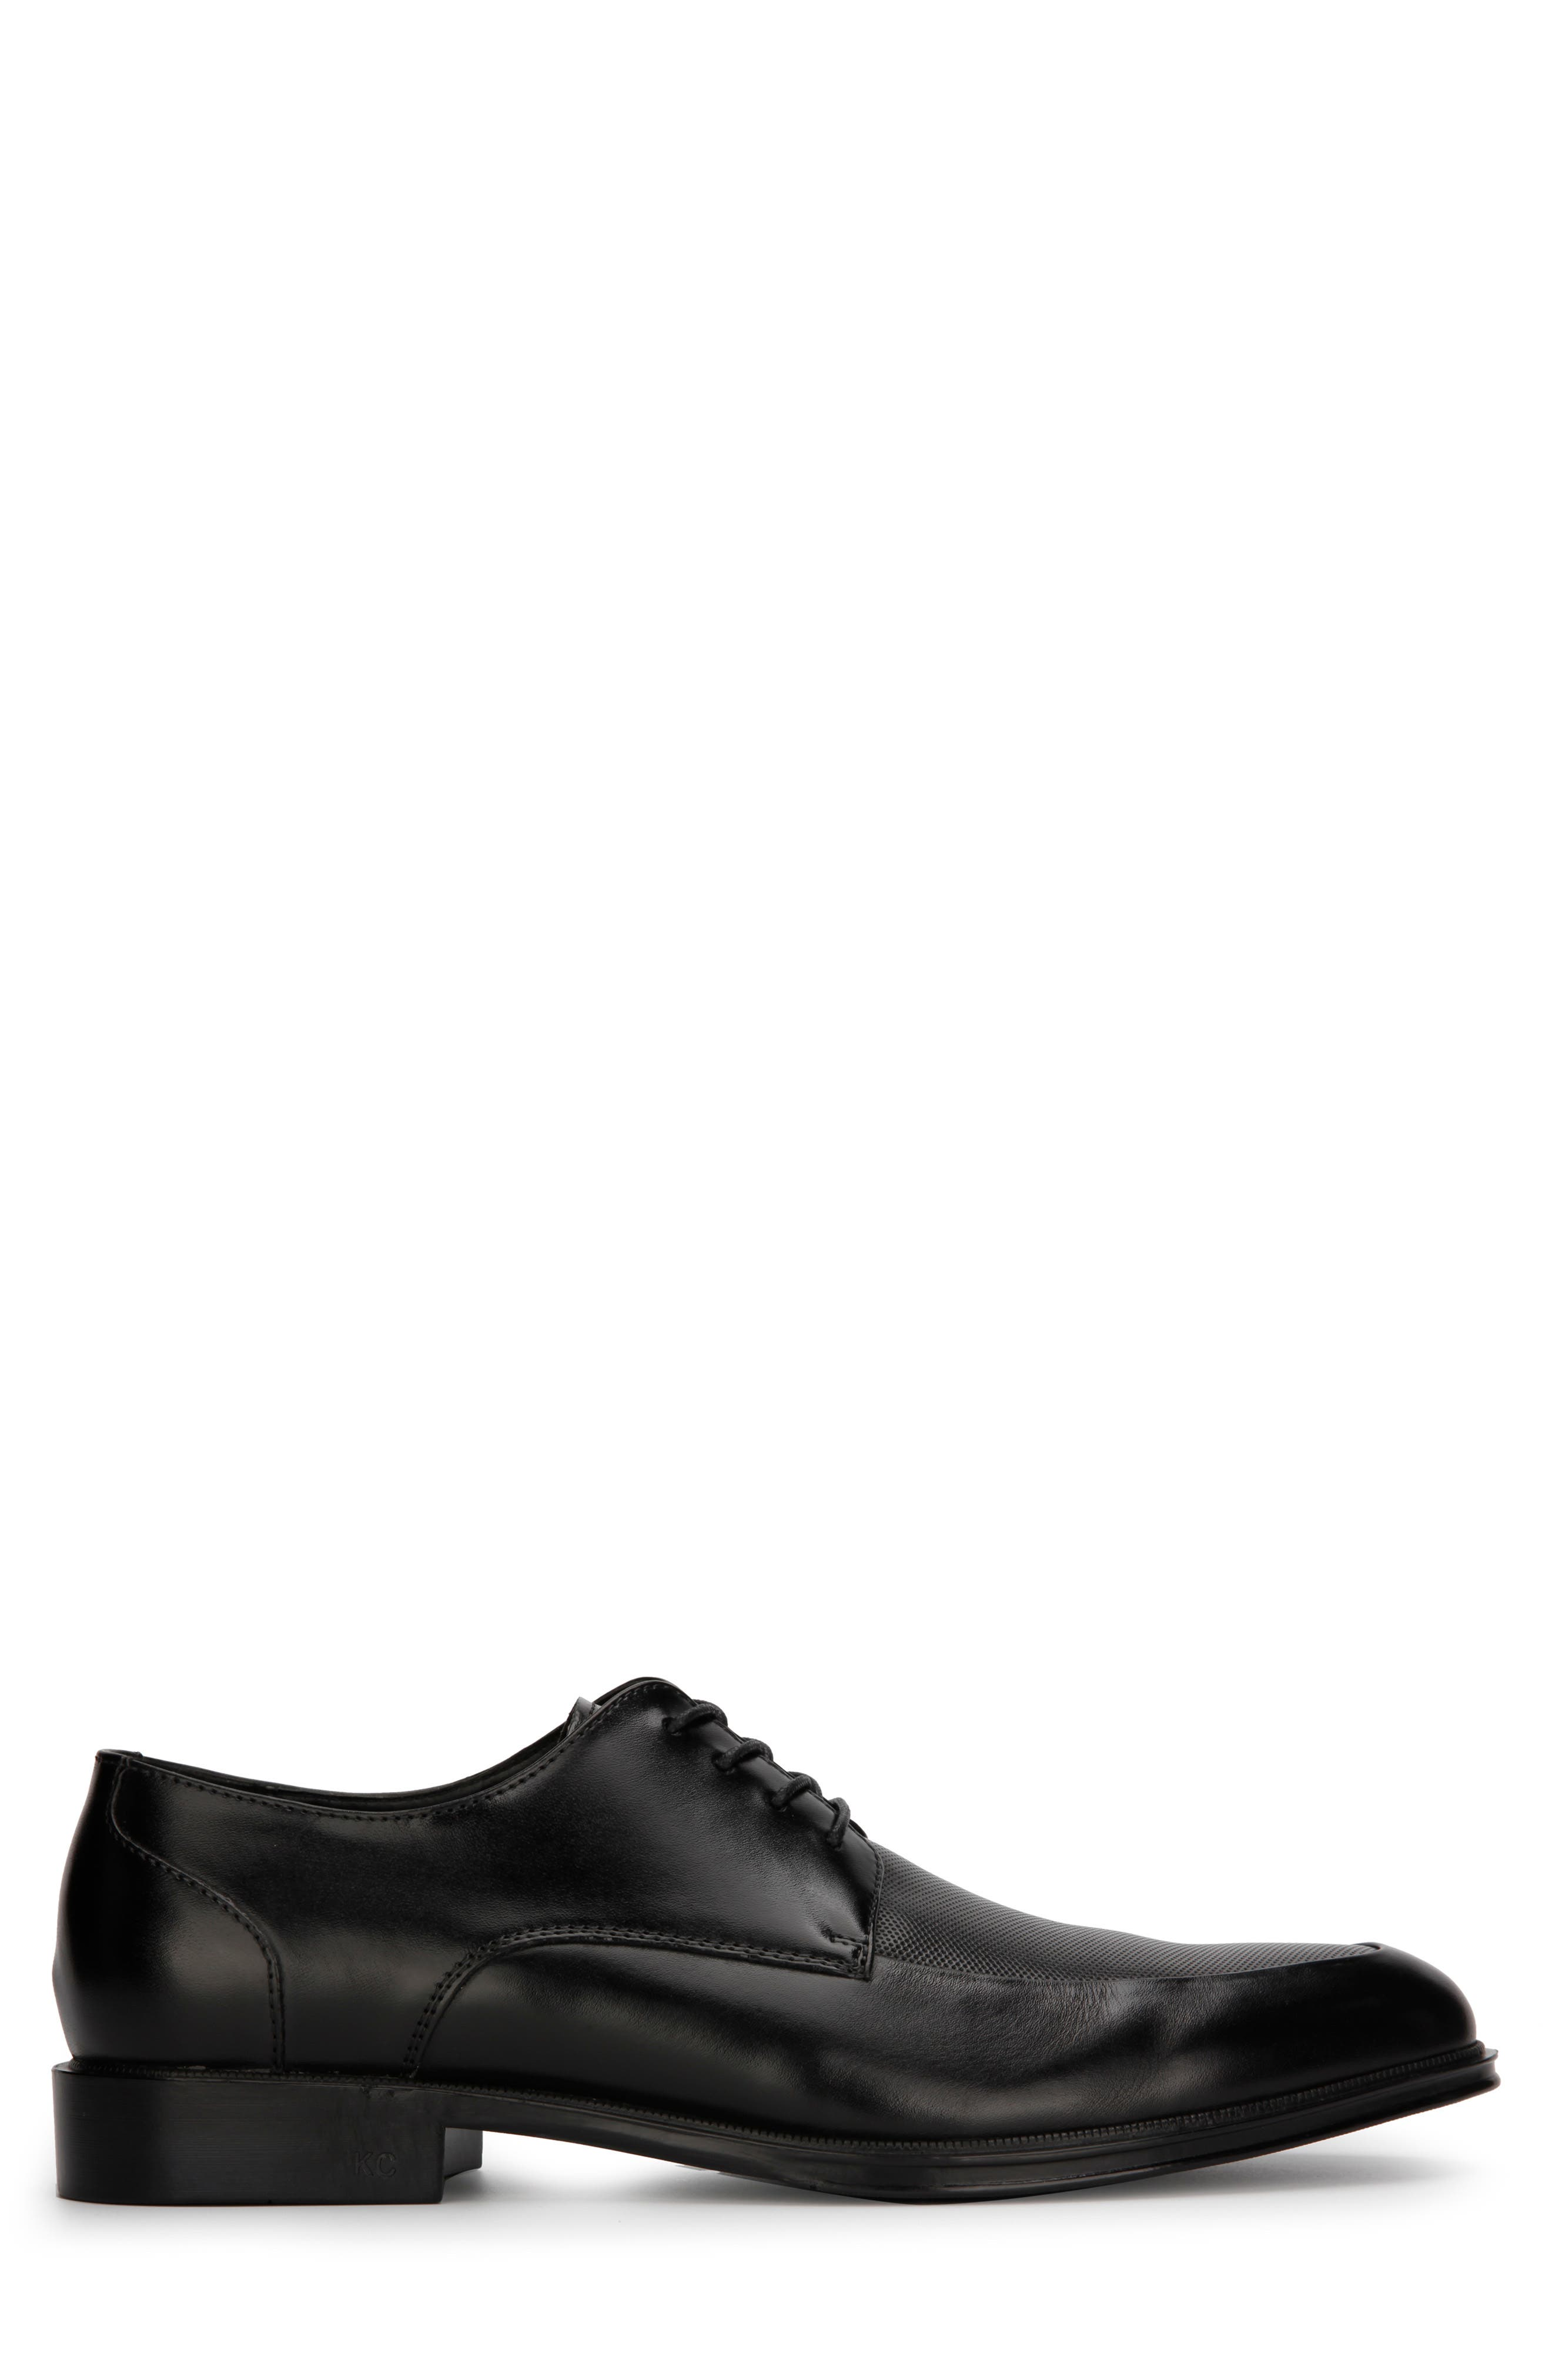 REACTION KENNETH COLE, Zac Moc Toe Derby, Alternate thumbnail 2, color, BLACK